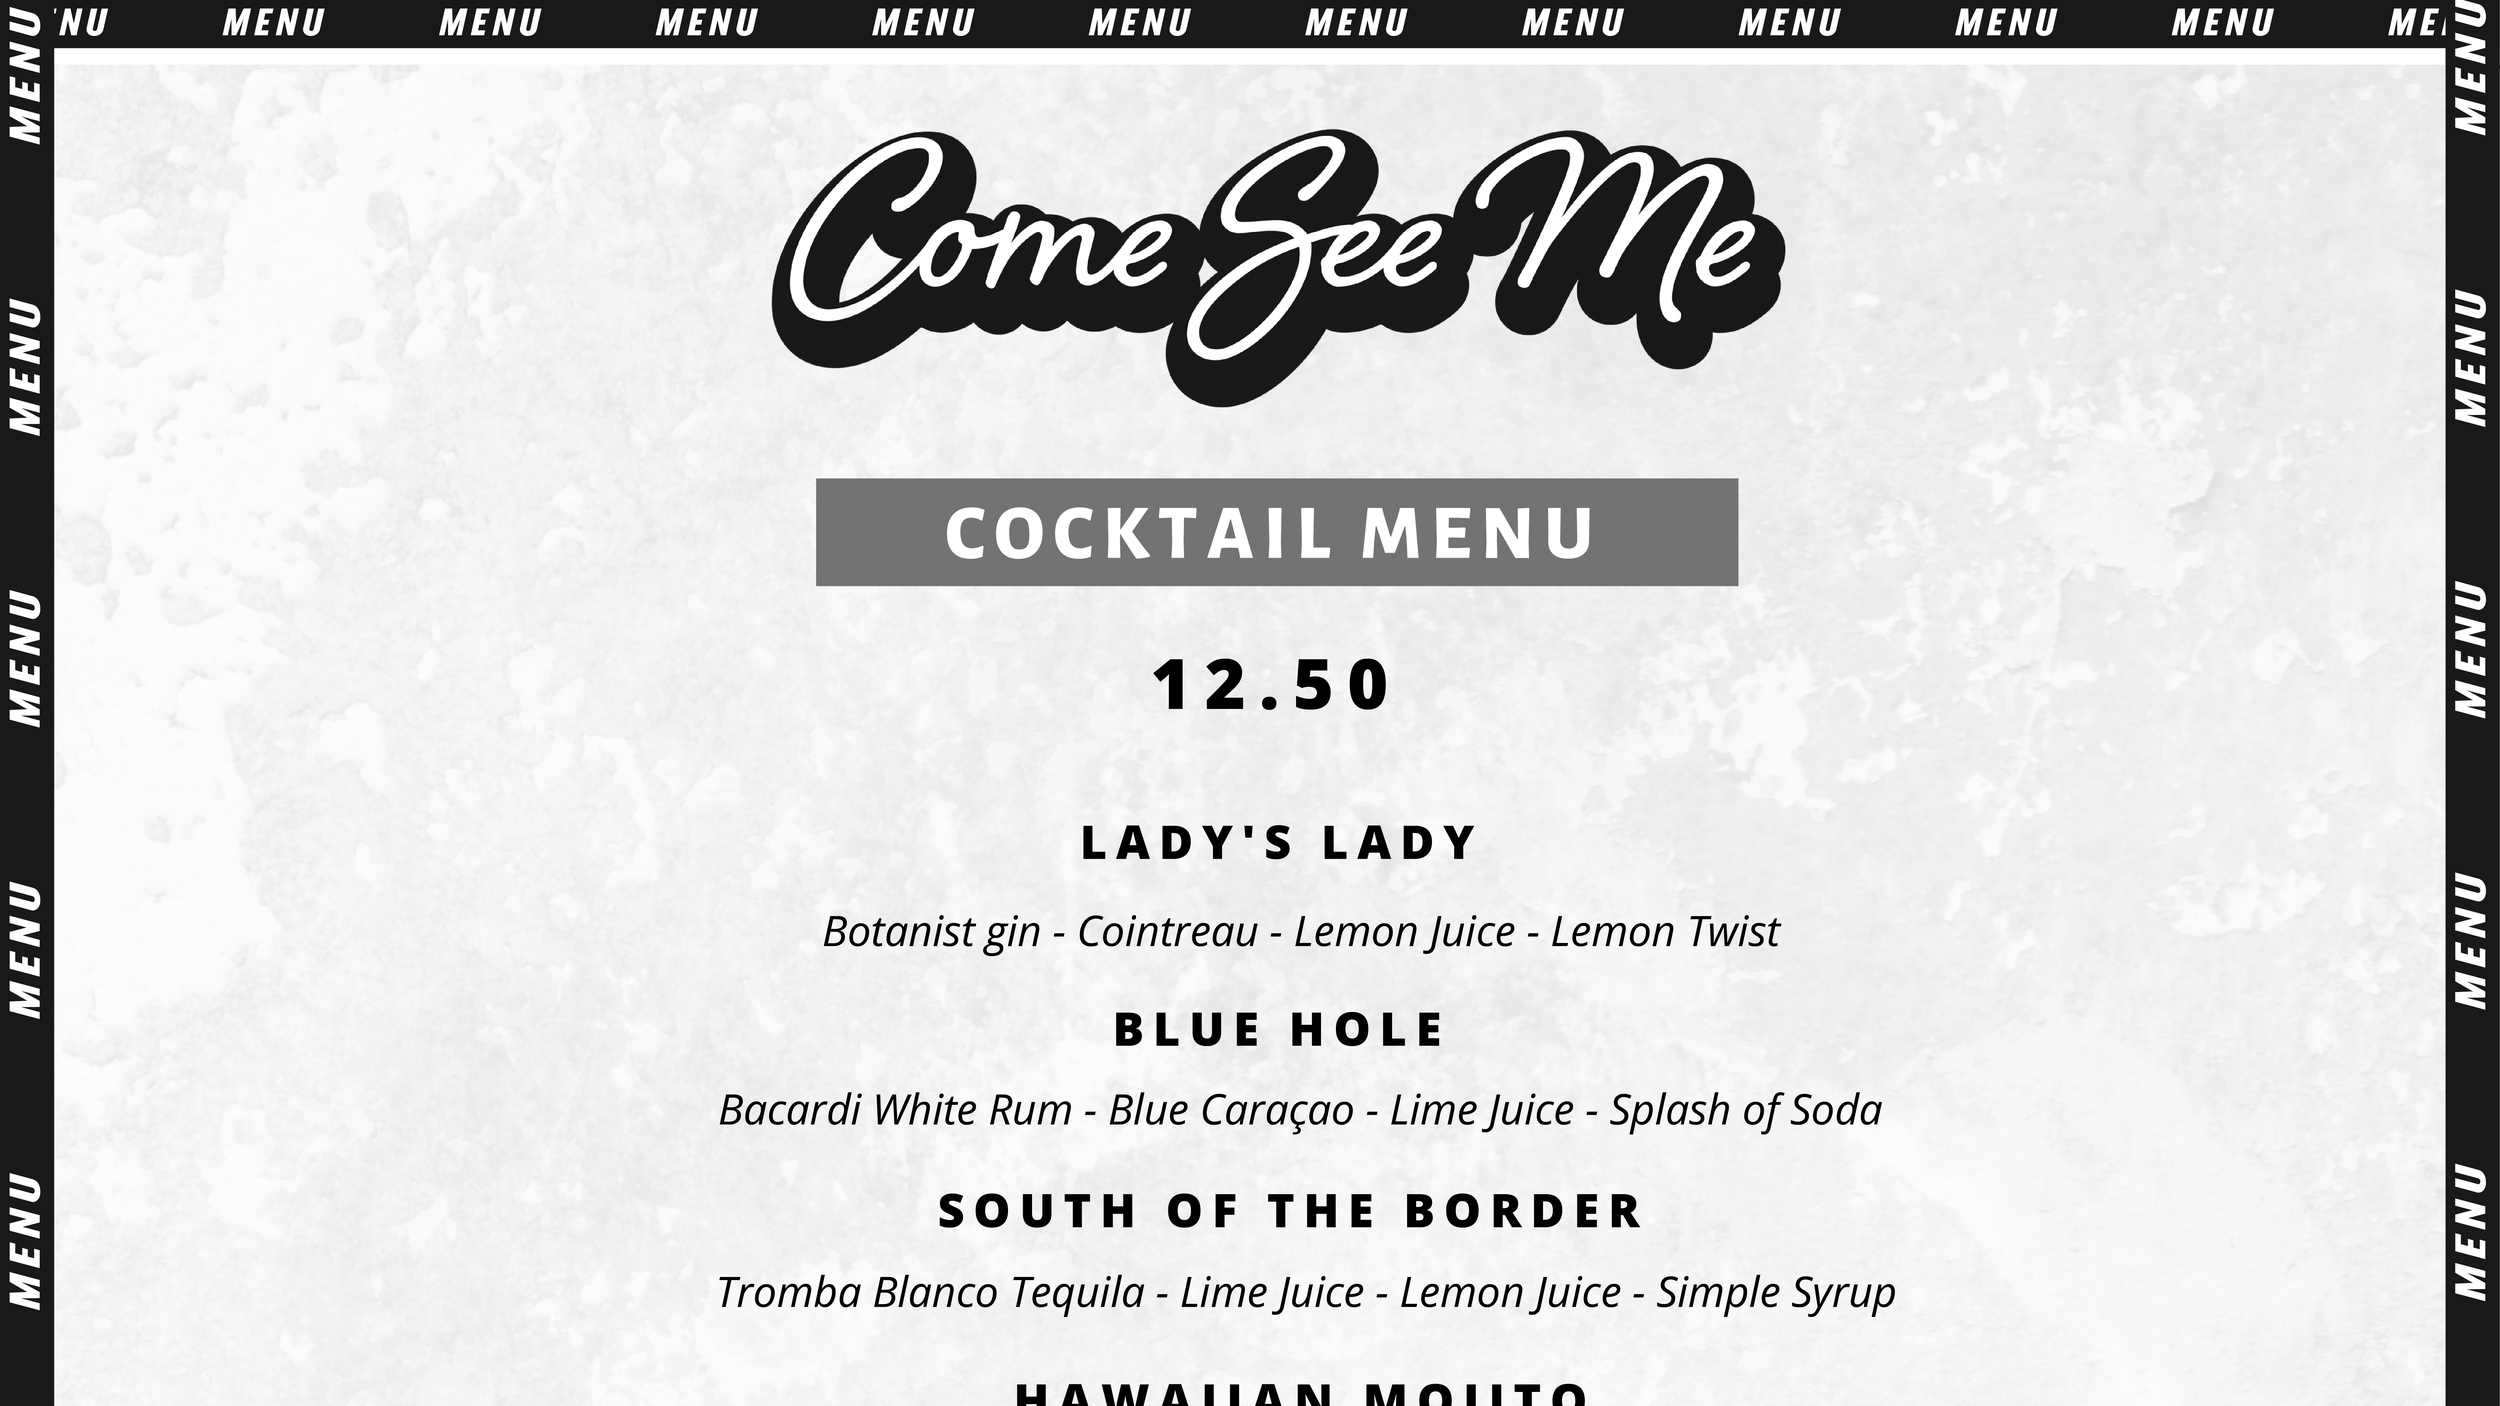 comeseemewebsite-marchdrink-18.png